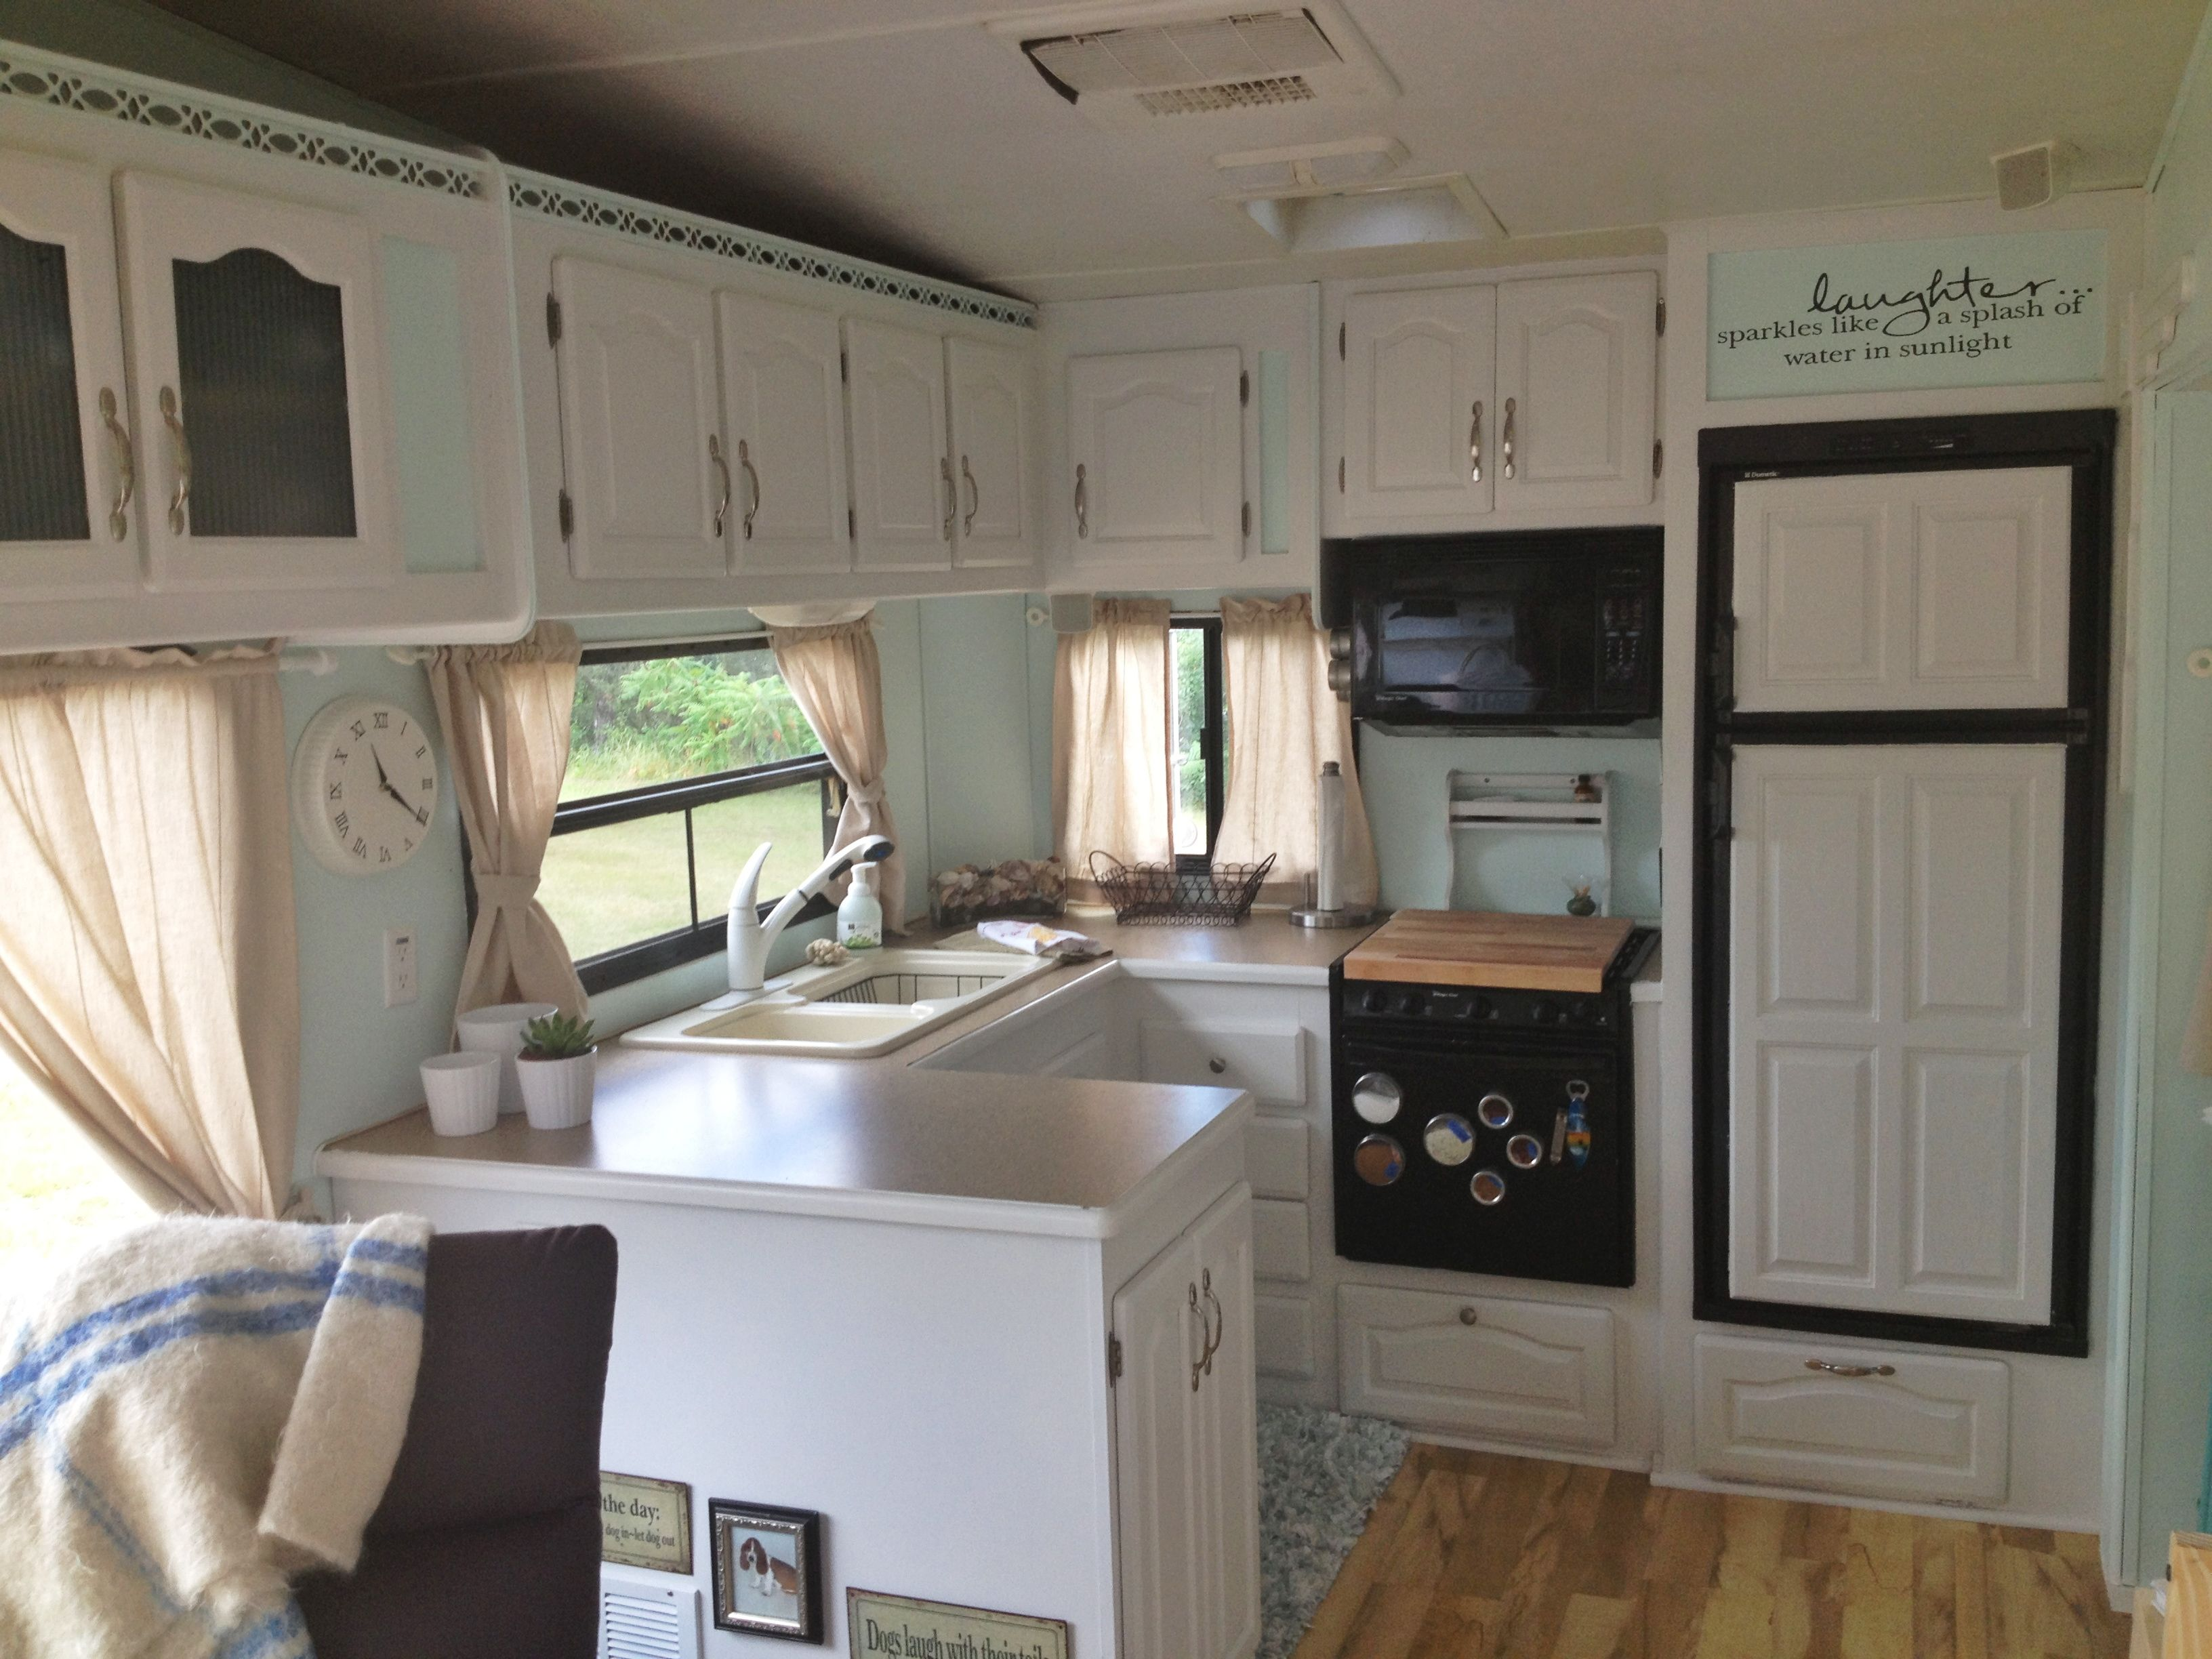 Diy rv interiors - Camper Interior Remodel Diy Travel Trailers Just About All Travel Trailers Utilize Wood Veneer This Will Go Quite A Way To Giving Your Family Campe